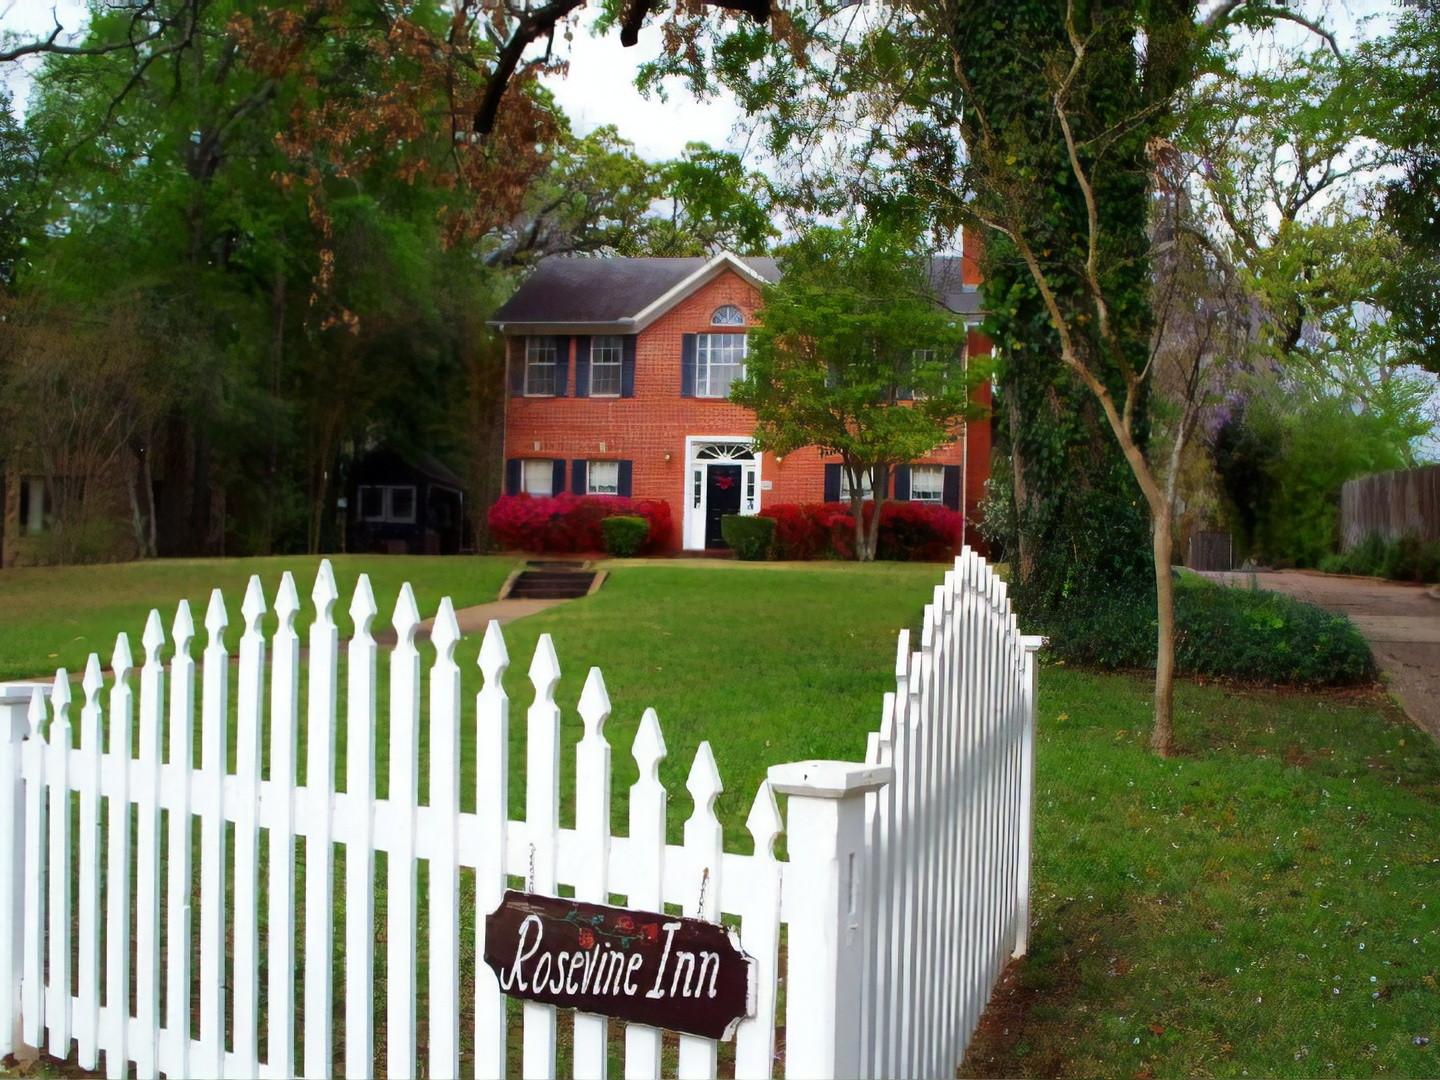 A white park bench sitting in front of a fence at Rosevine Inn Bed & Breakfast and Extended Stay Lodging.